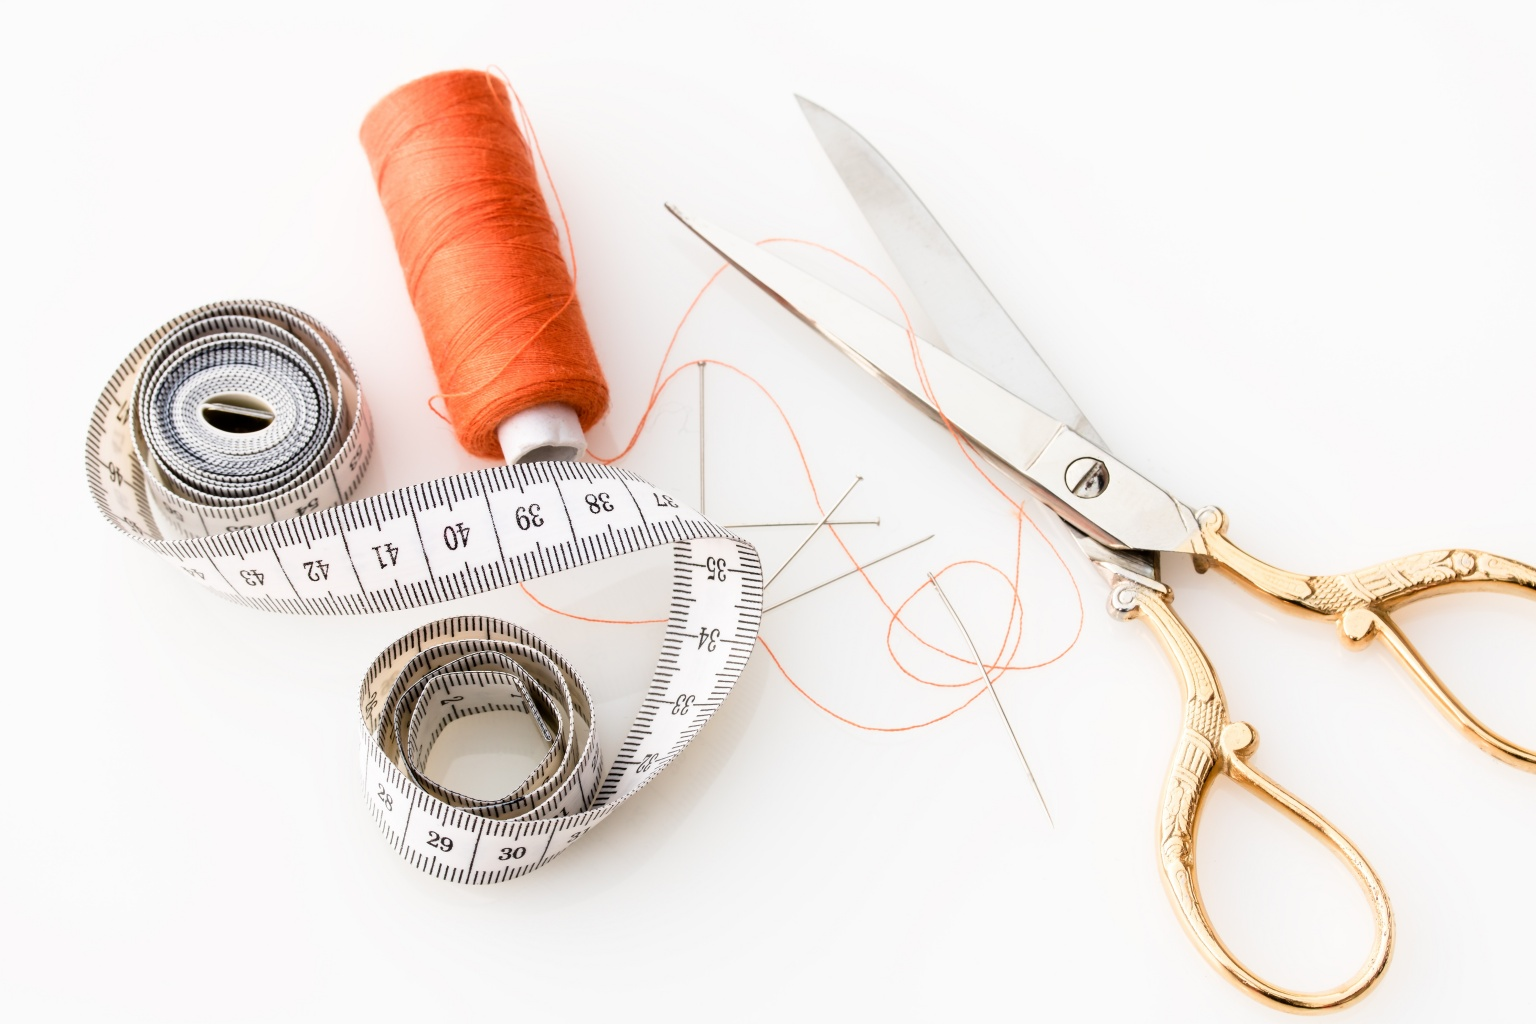 Scissor, Needle, tape measure and thread